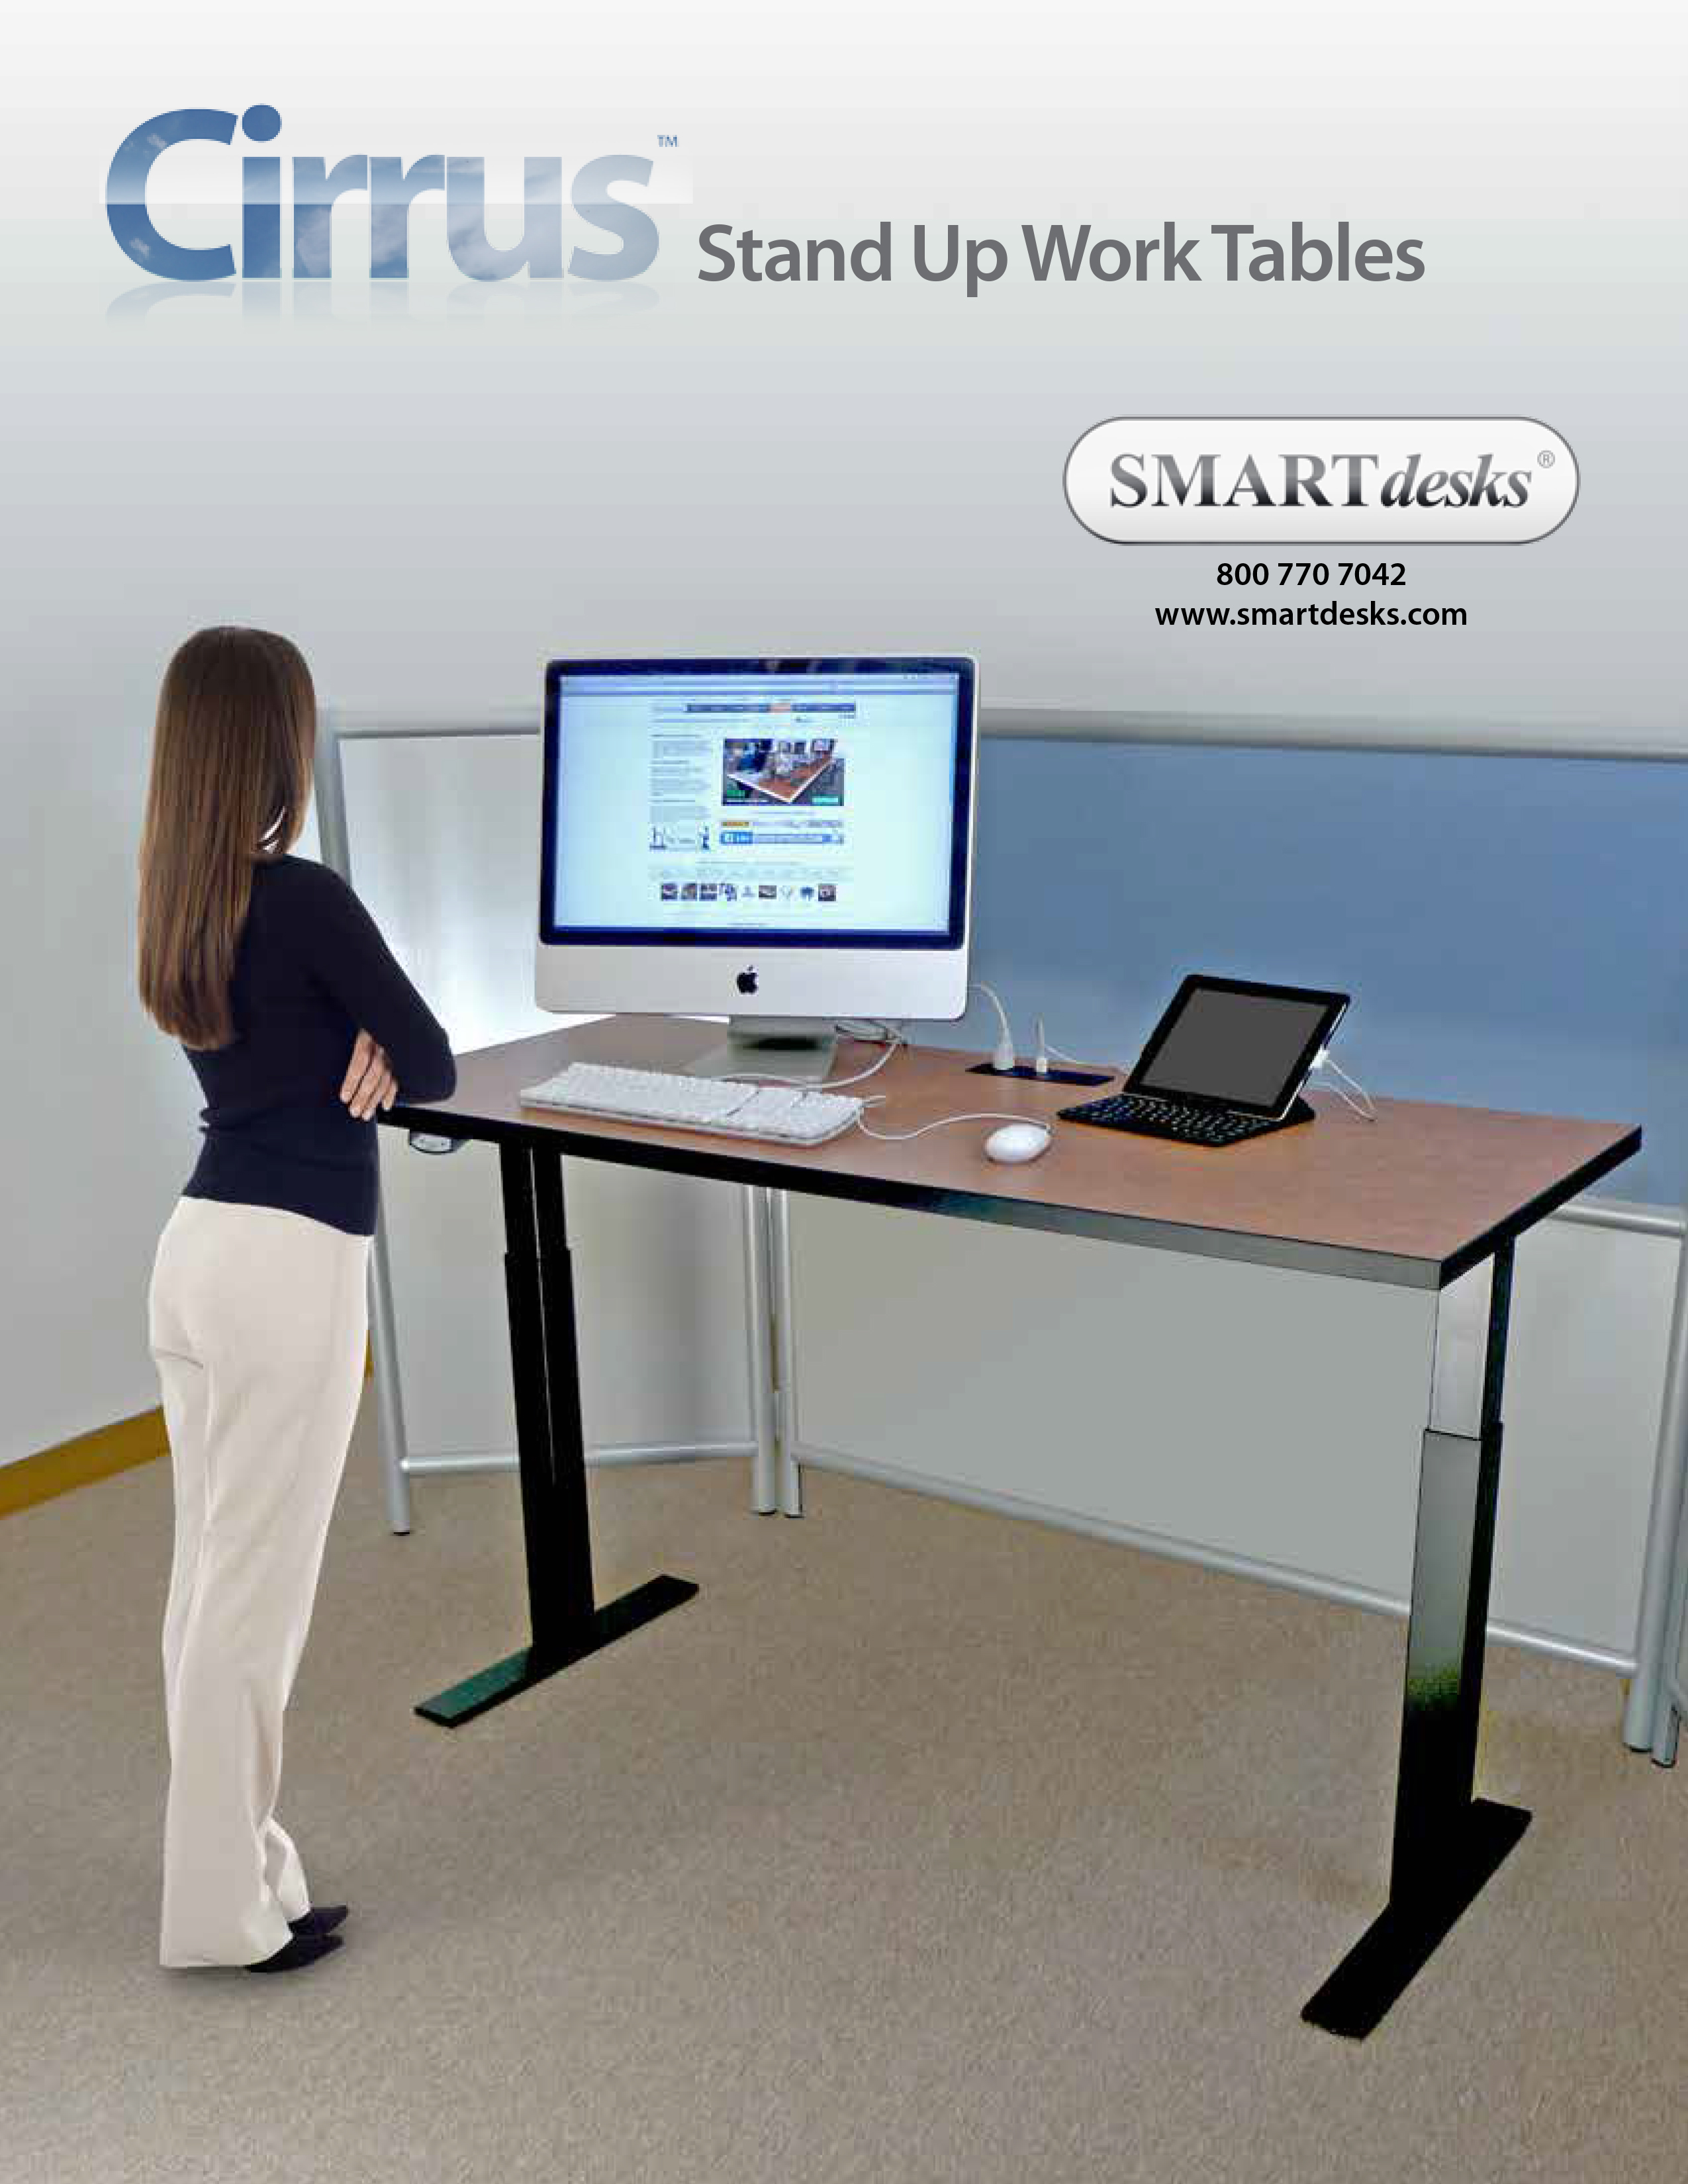 Stand Up Smart Desks New Line Makes It Easier for People